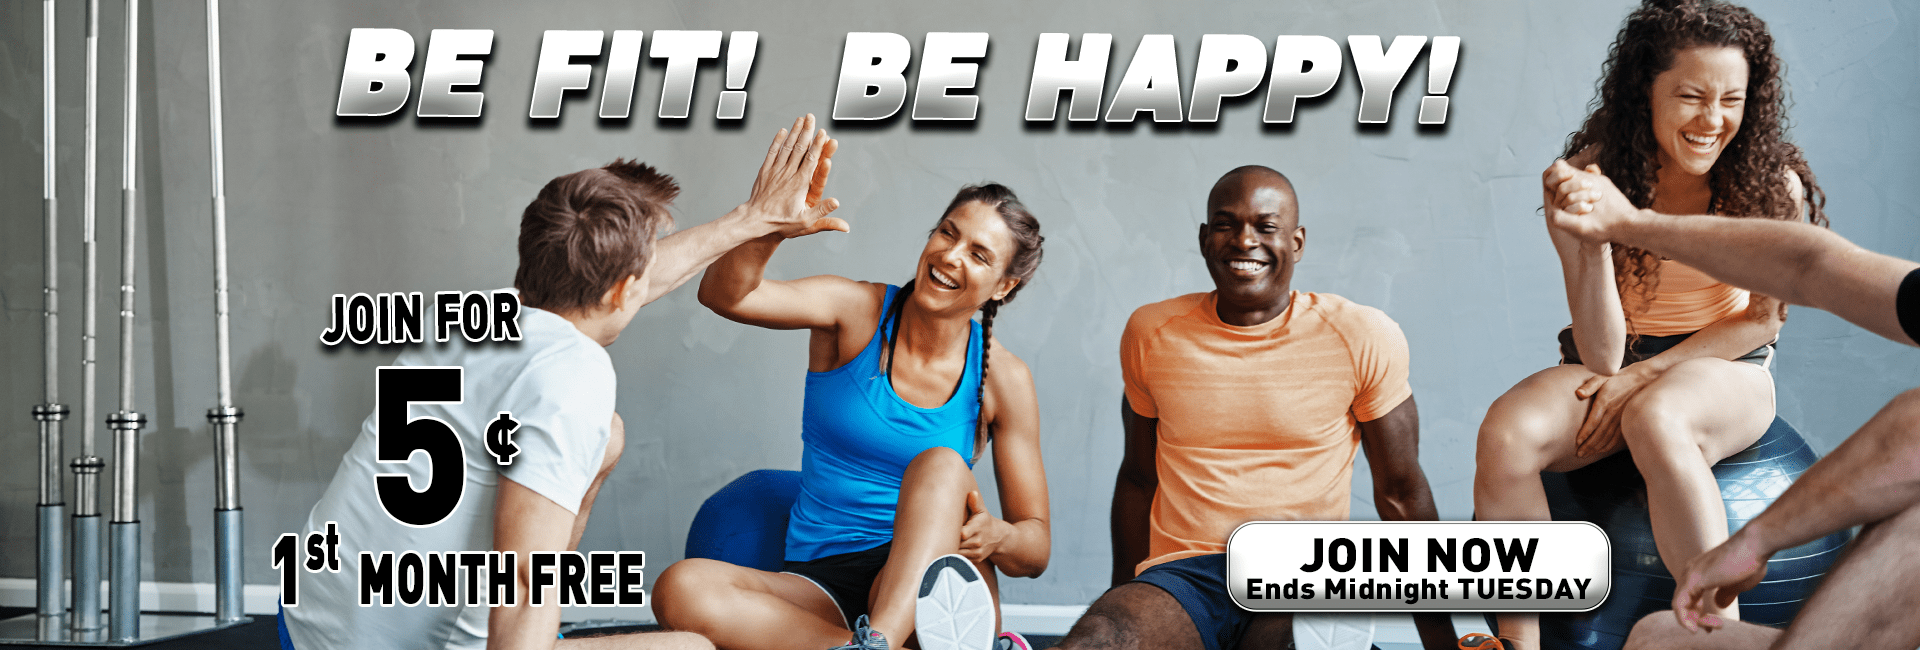 Join Now 0116 Join .05 FMF be fit BE HAPPY